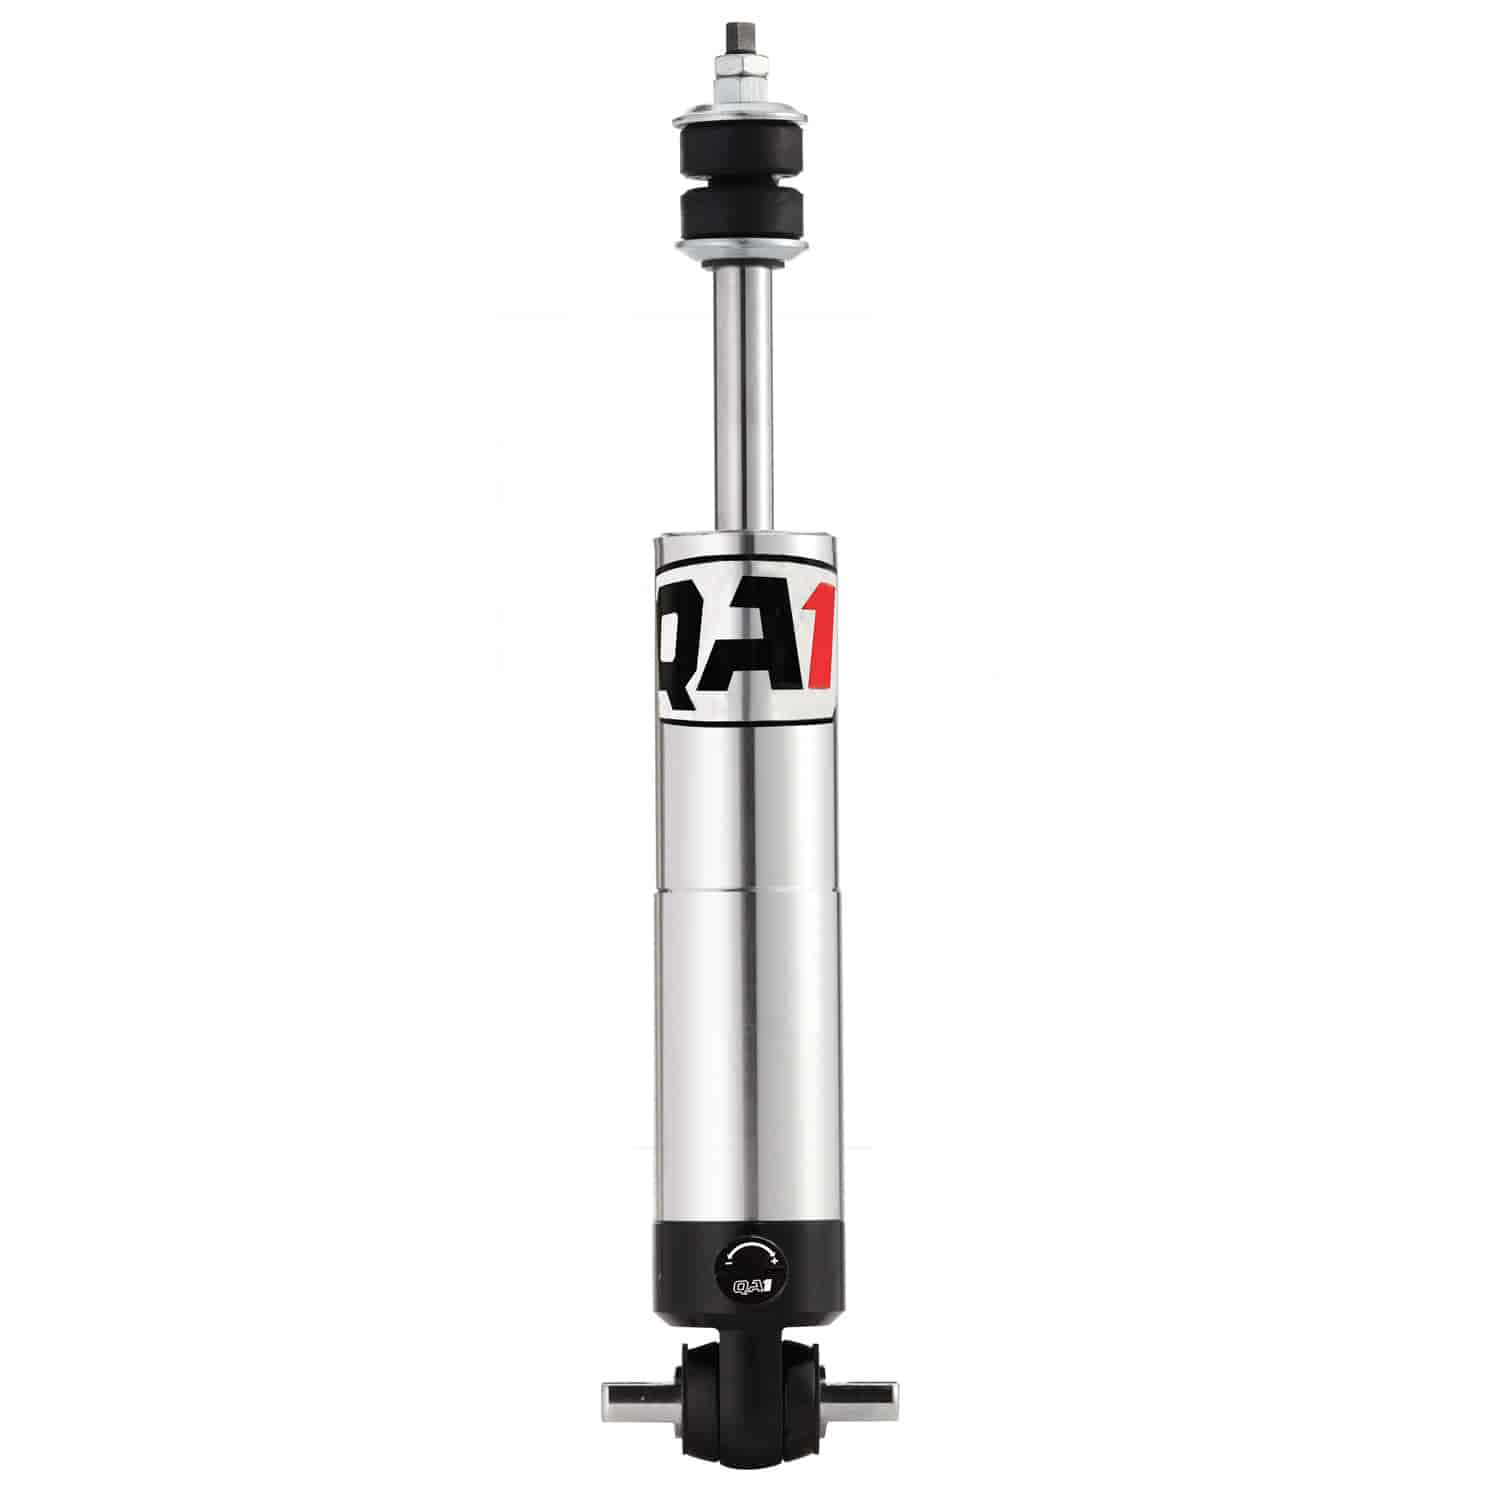 QA1 TS702 - QA1 Stocker Star Adjustable Shocks